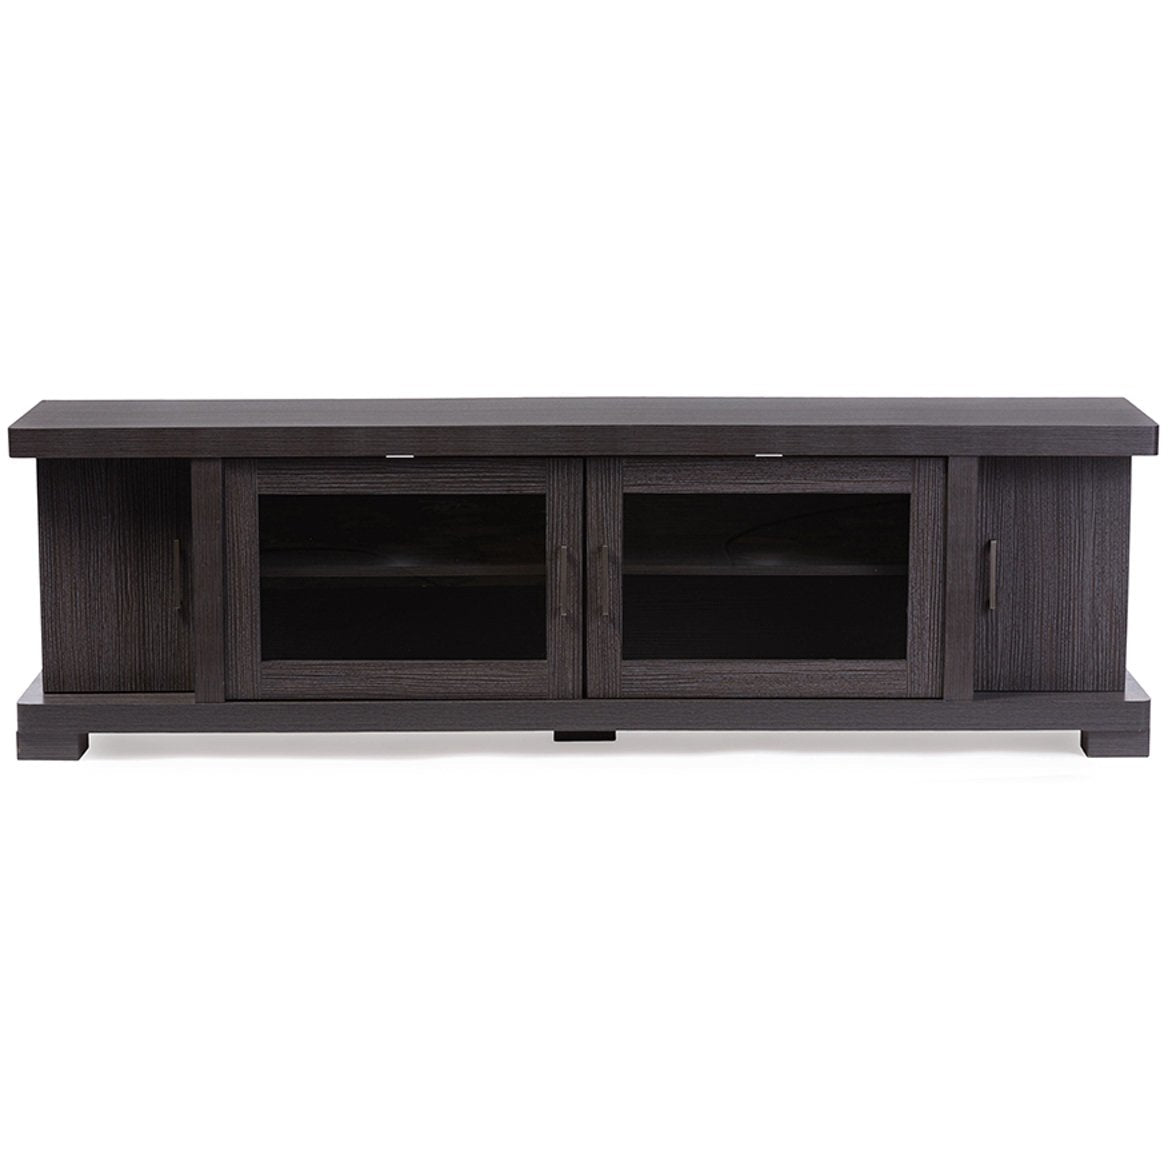 Baxton Studio Viveka 70-Inch Dark Brown Wood TV Cabinet with 2 Glass Doors and 2 Doors Baxton Studio-TV Stands-Minimal And Modern - 1